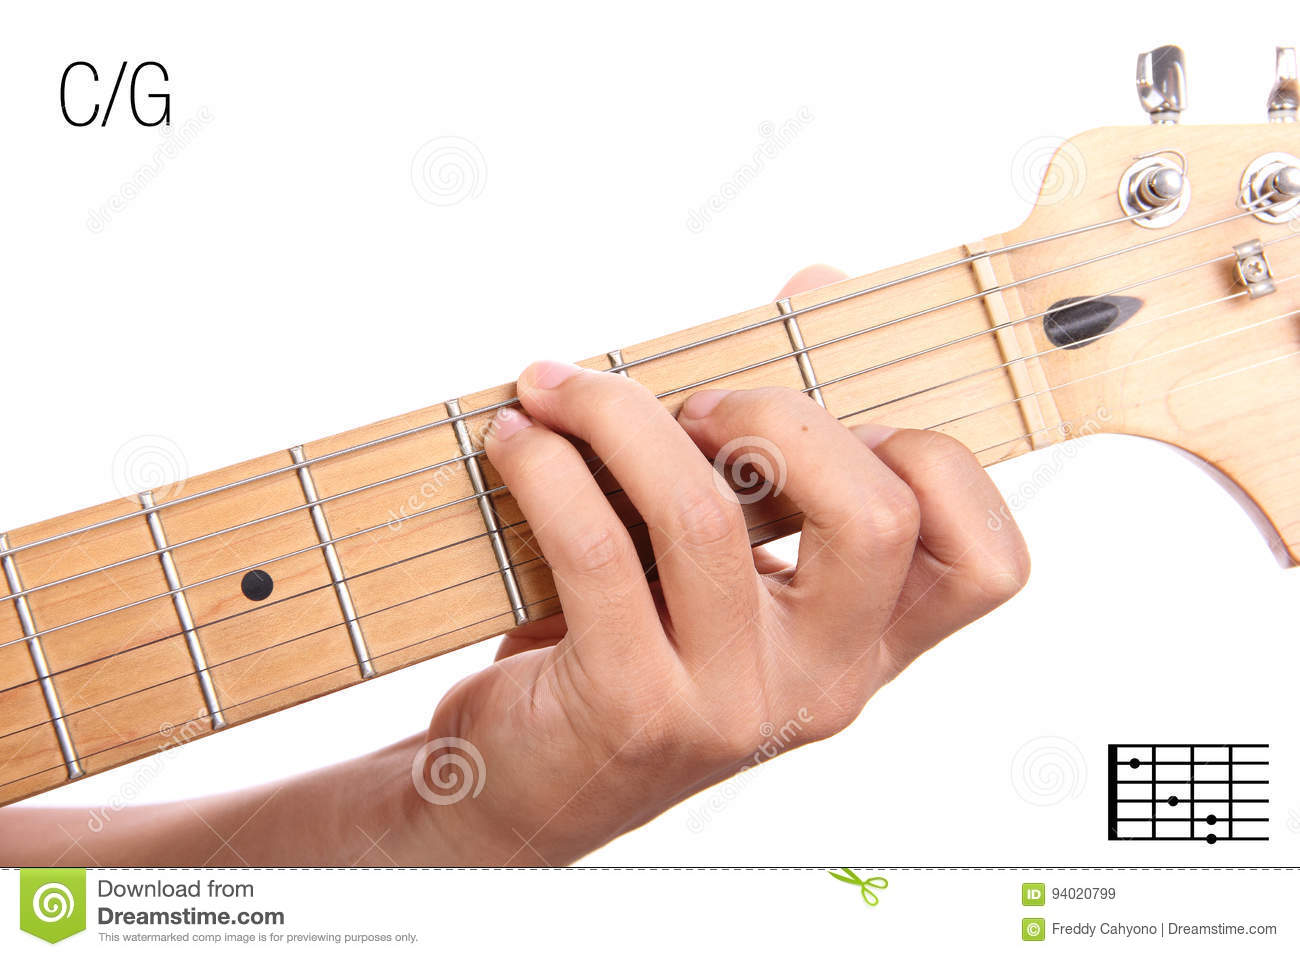 Cg guitar chord tutorial stock image image of minor 94020799 cg guitar chord tutorial hexwebz Choice Image